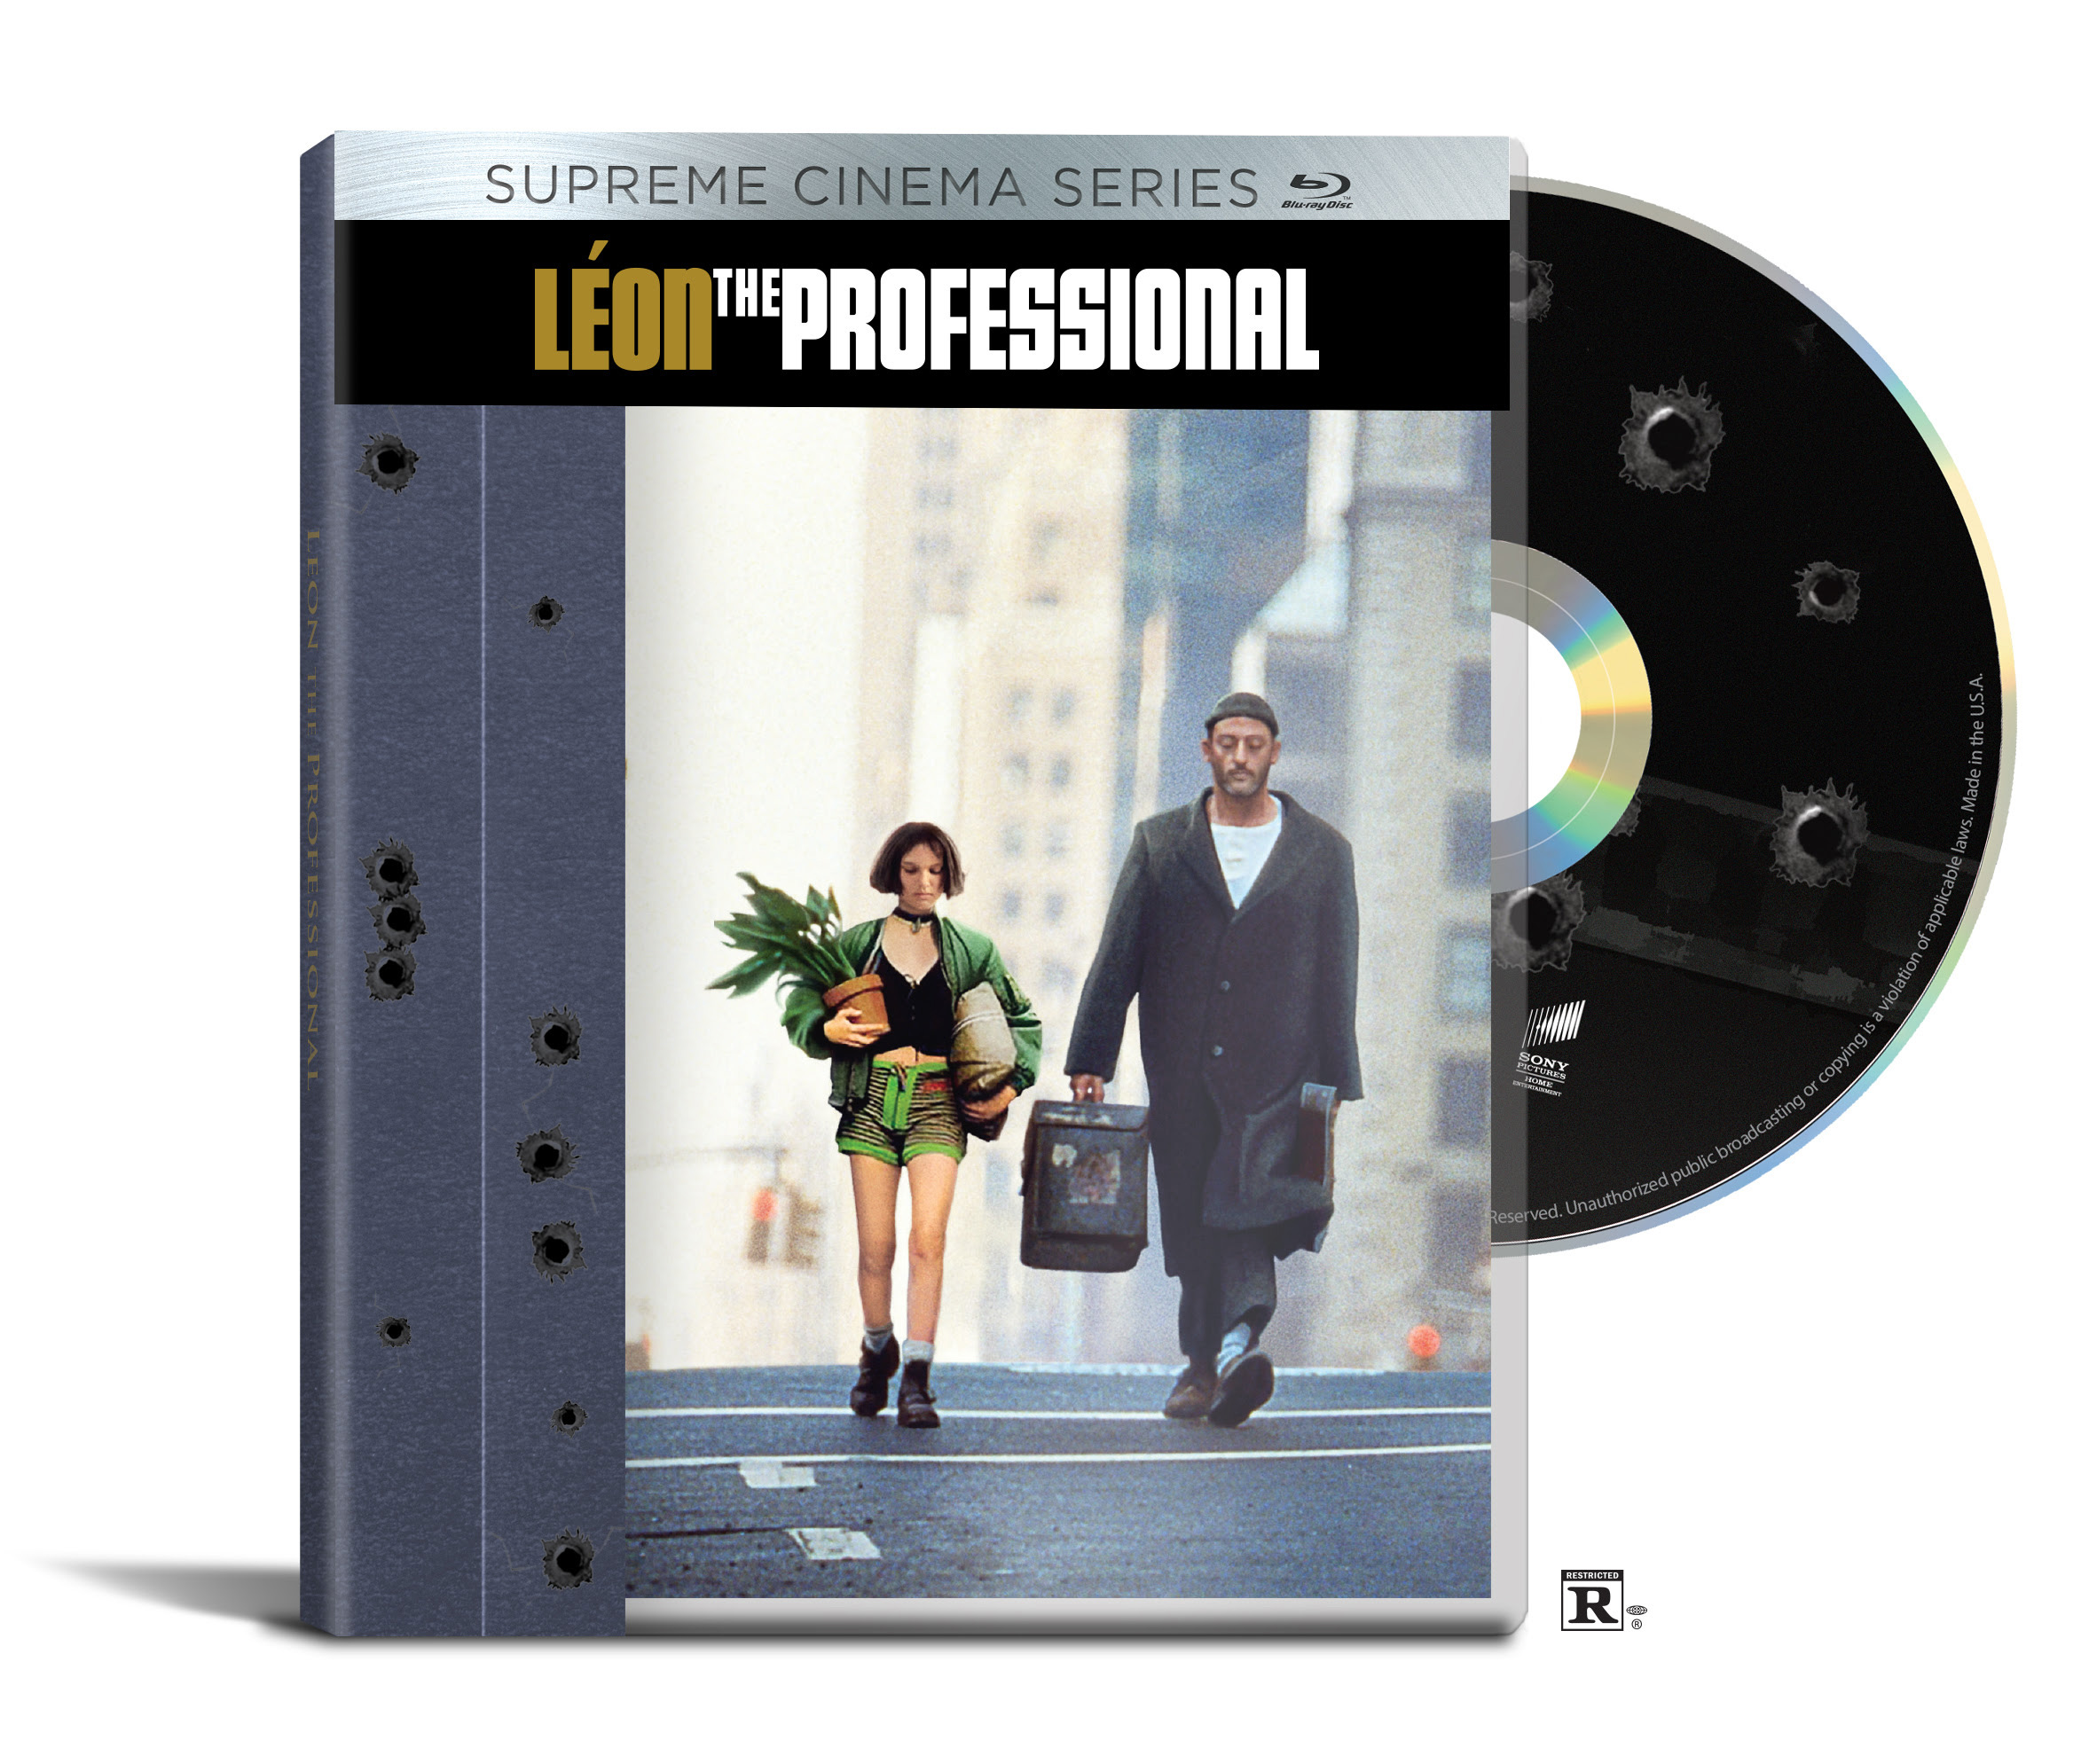 Warriors Vs Knights Live Stream Free: Supreme Cinema Series Blu-ray Line Expands With Leon: The